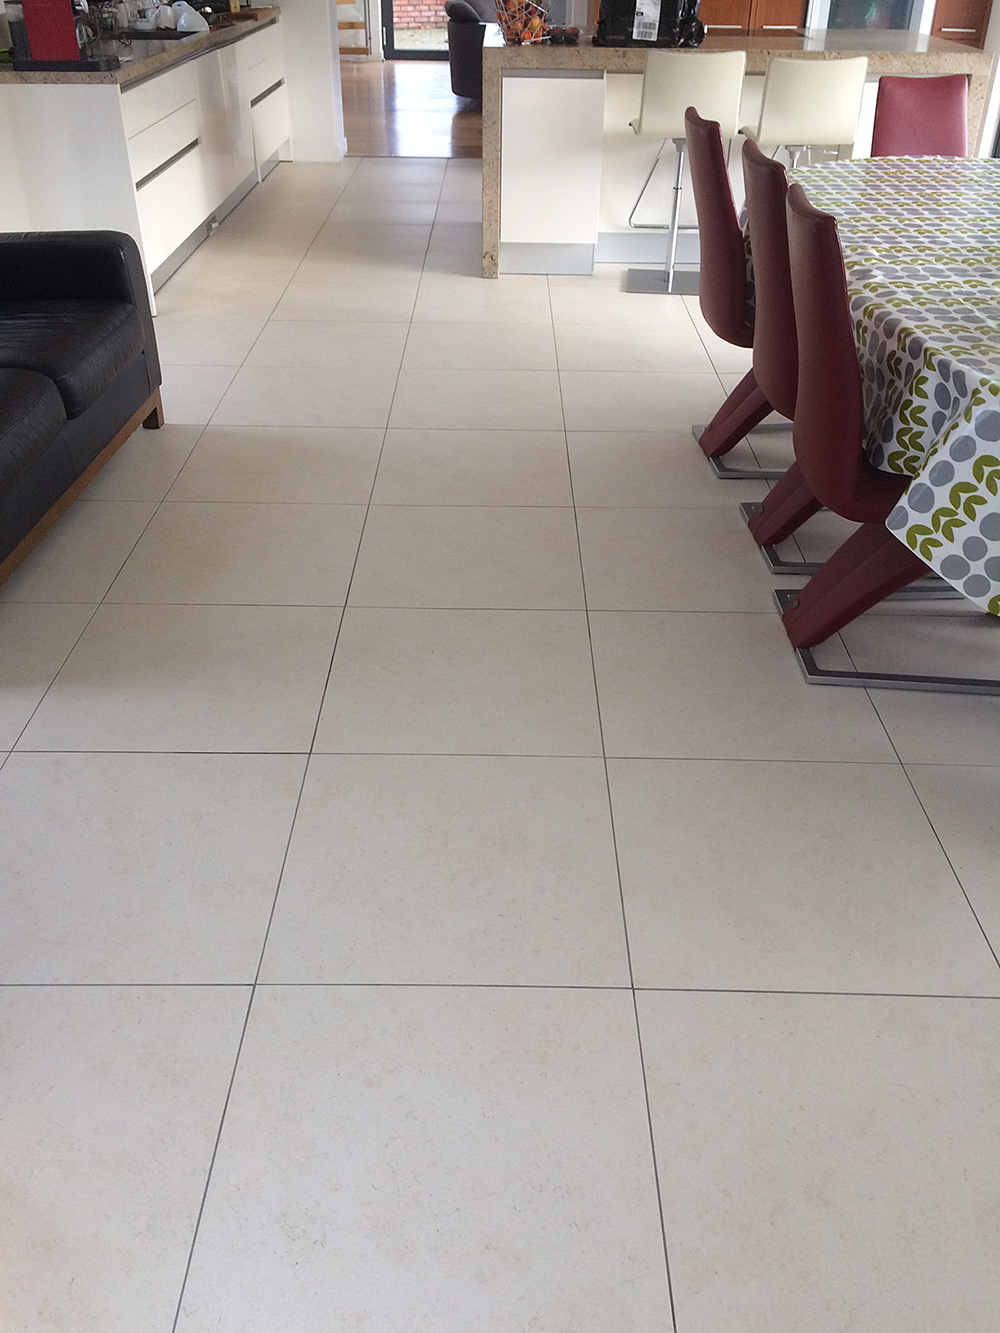 Safety Floor Cleaning Belfast Contract Cleaning Services